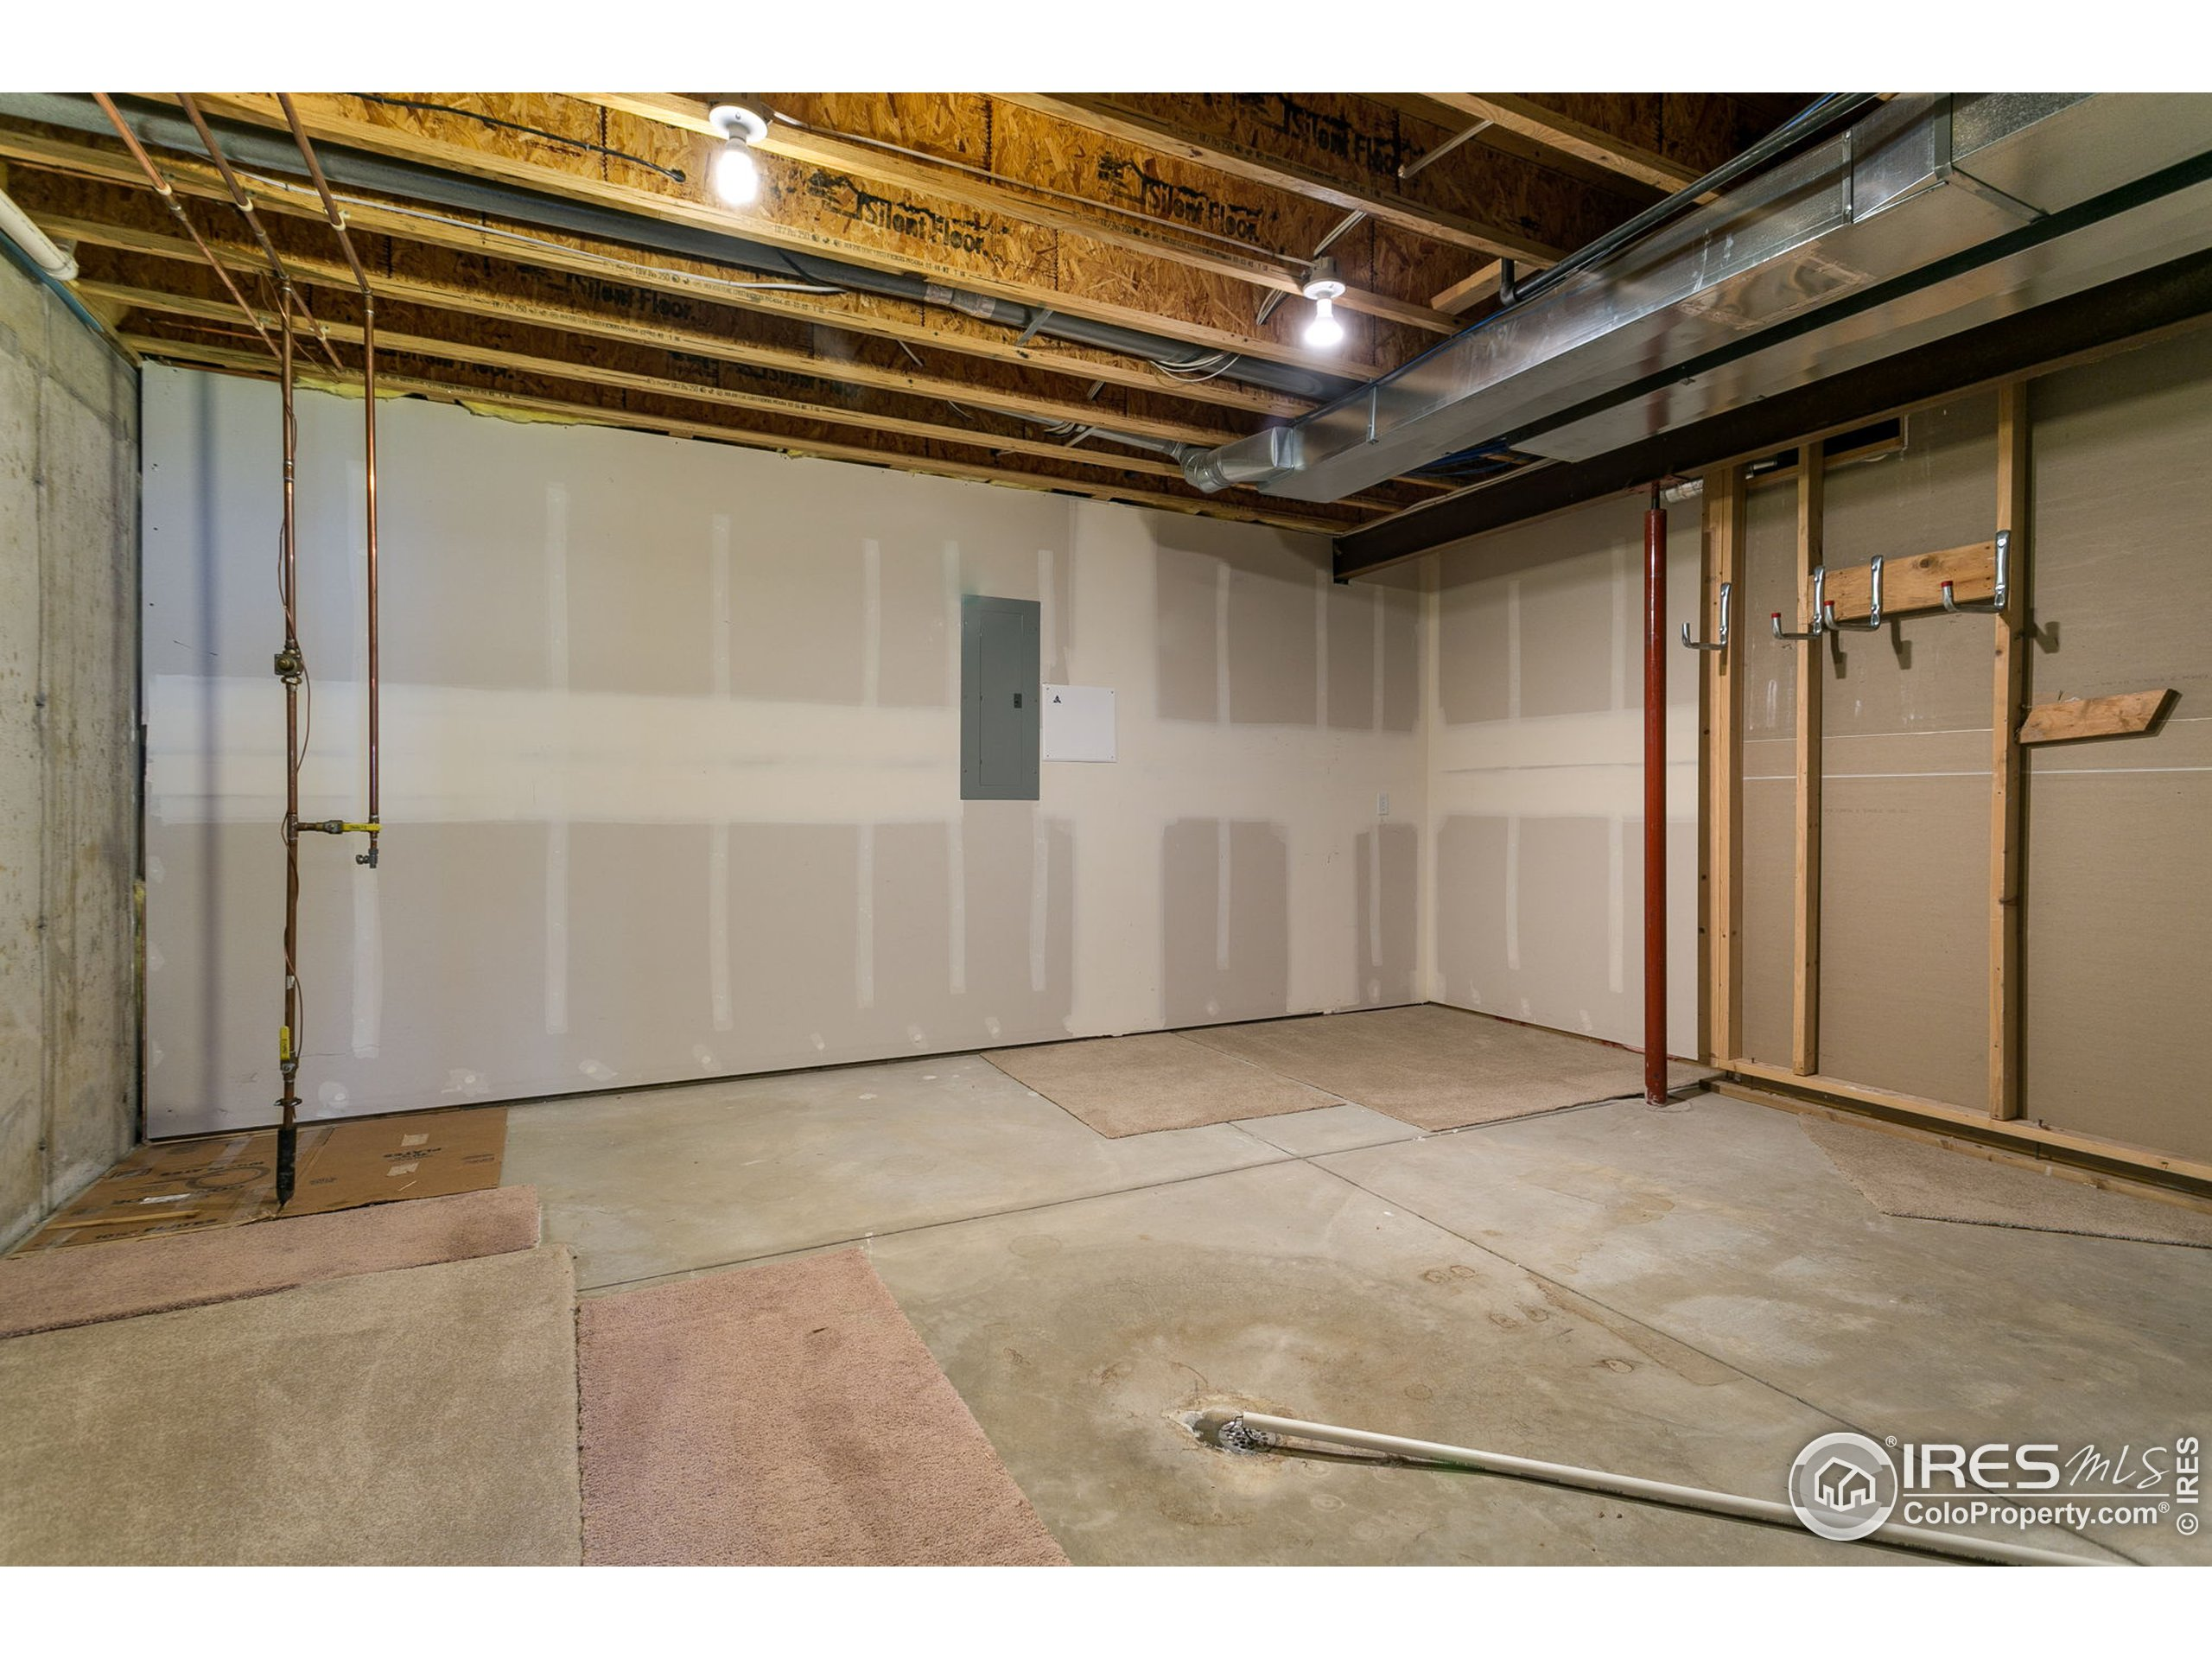 Unfinished area and mechanical room